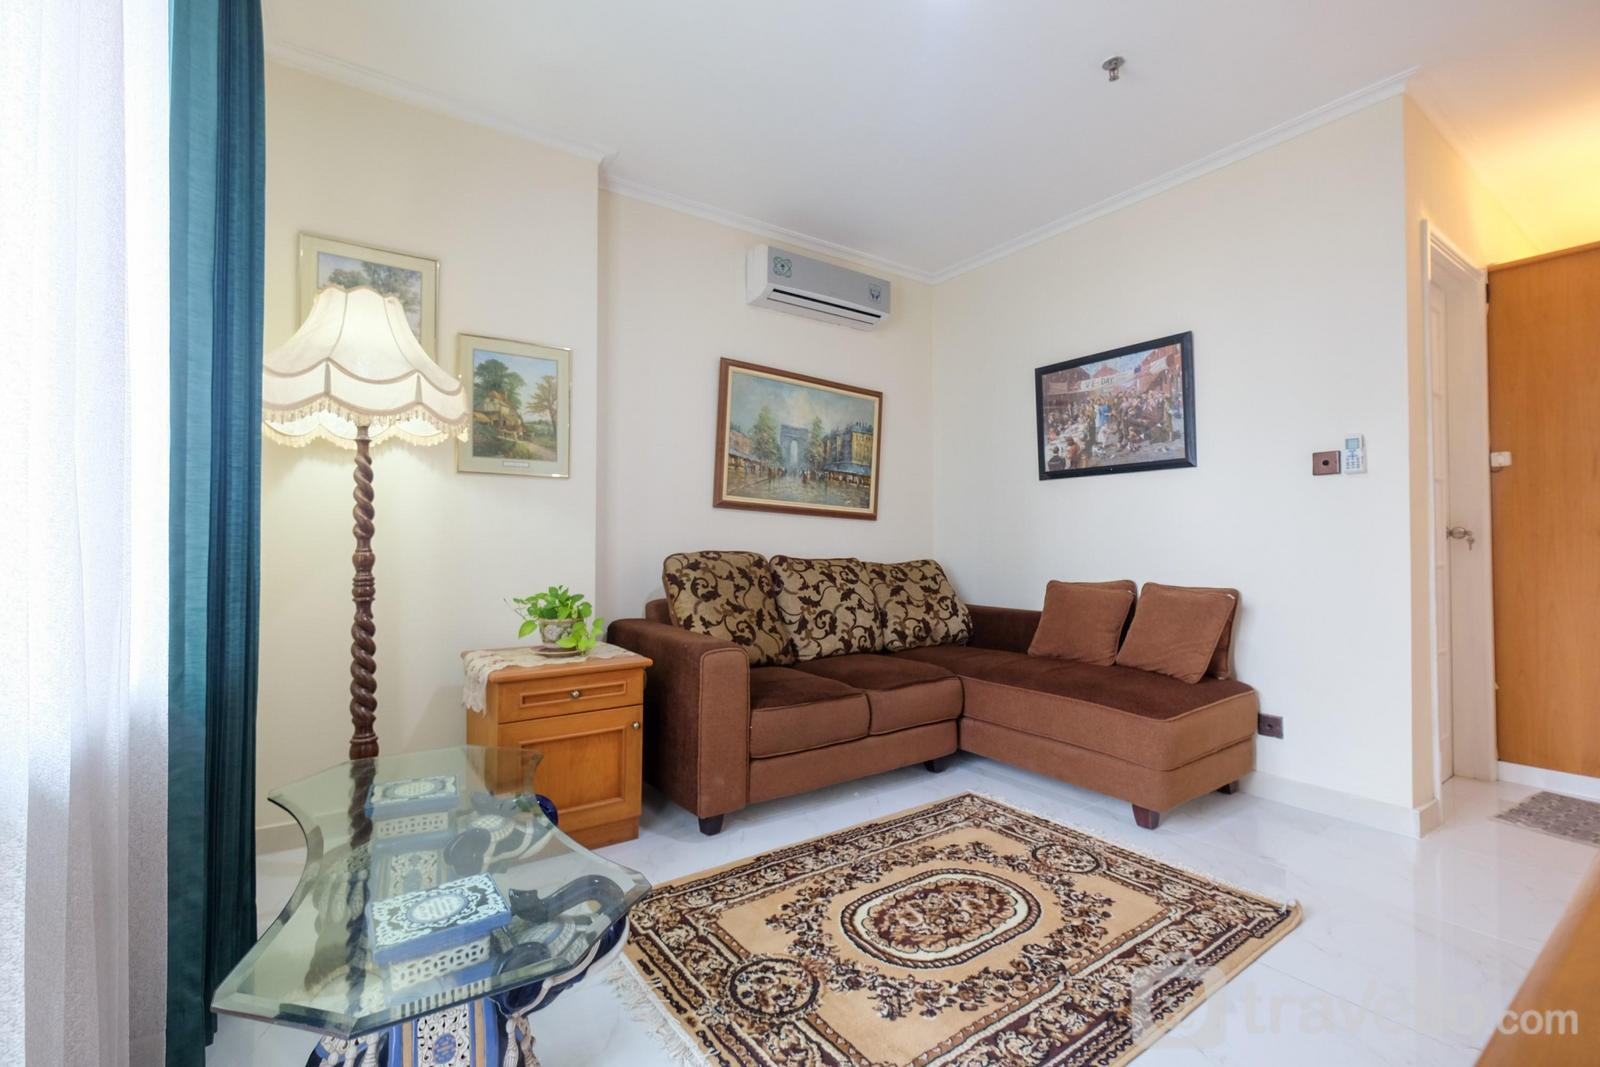 Semanggi Apartment - Comfortable 1BR at Apartment Semanggi Slipi By Travelio